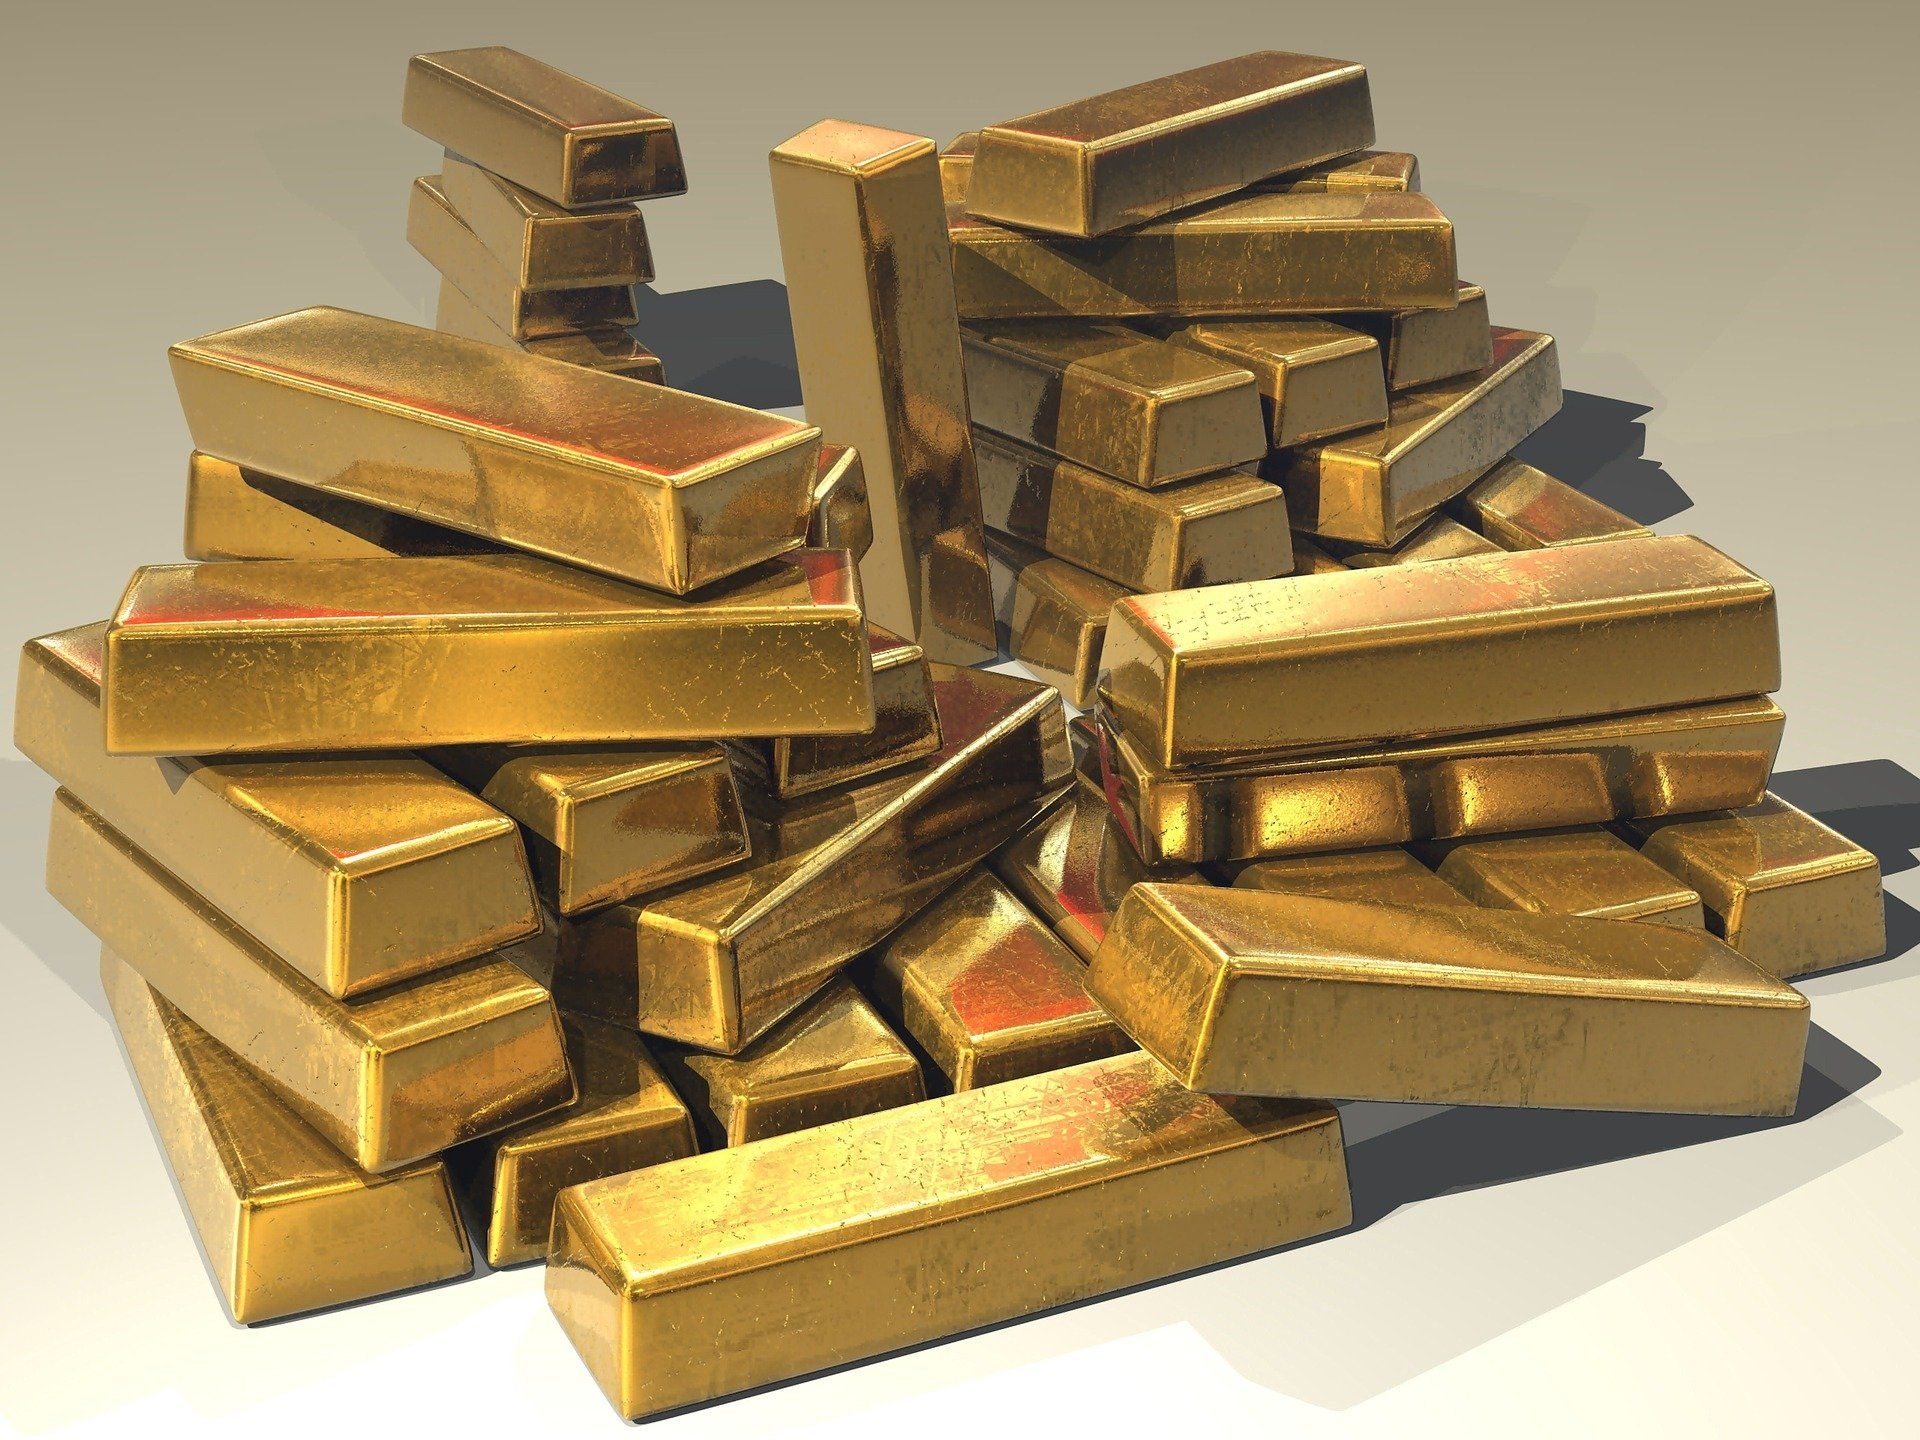 The thief had hopes that they would find a big pile of gold!   Photo: Pixabay/Steve Bidmead